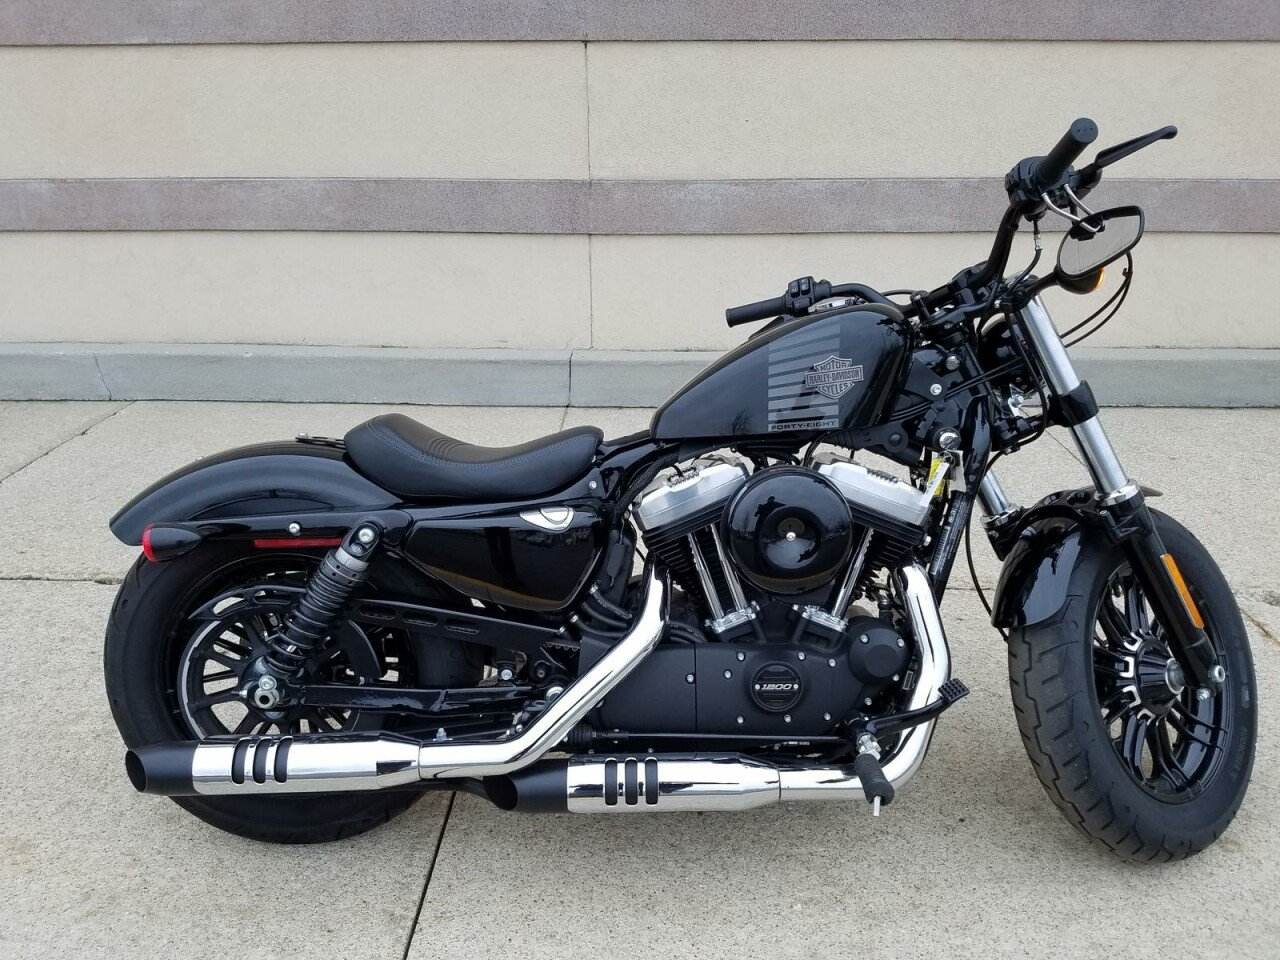 2017 Harley-Davidson Sportster Forty-Eight for sale near ...